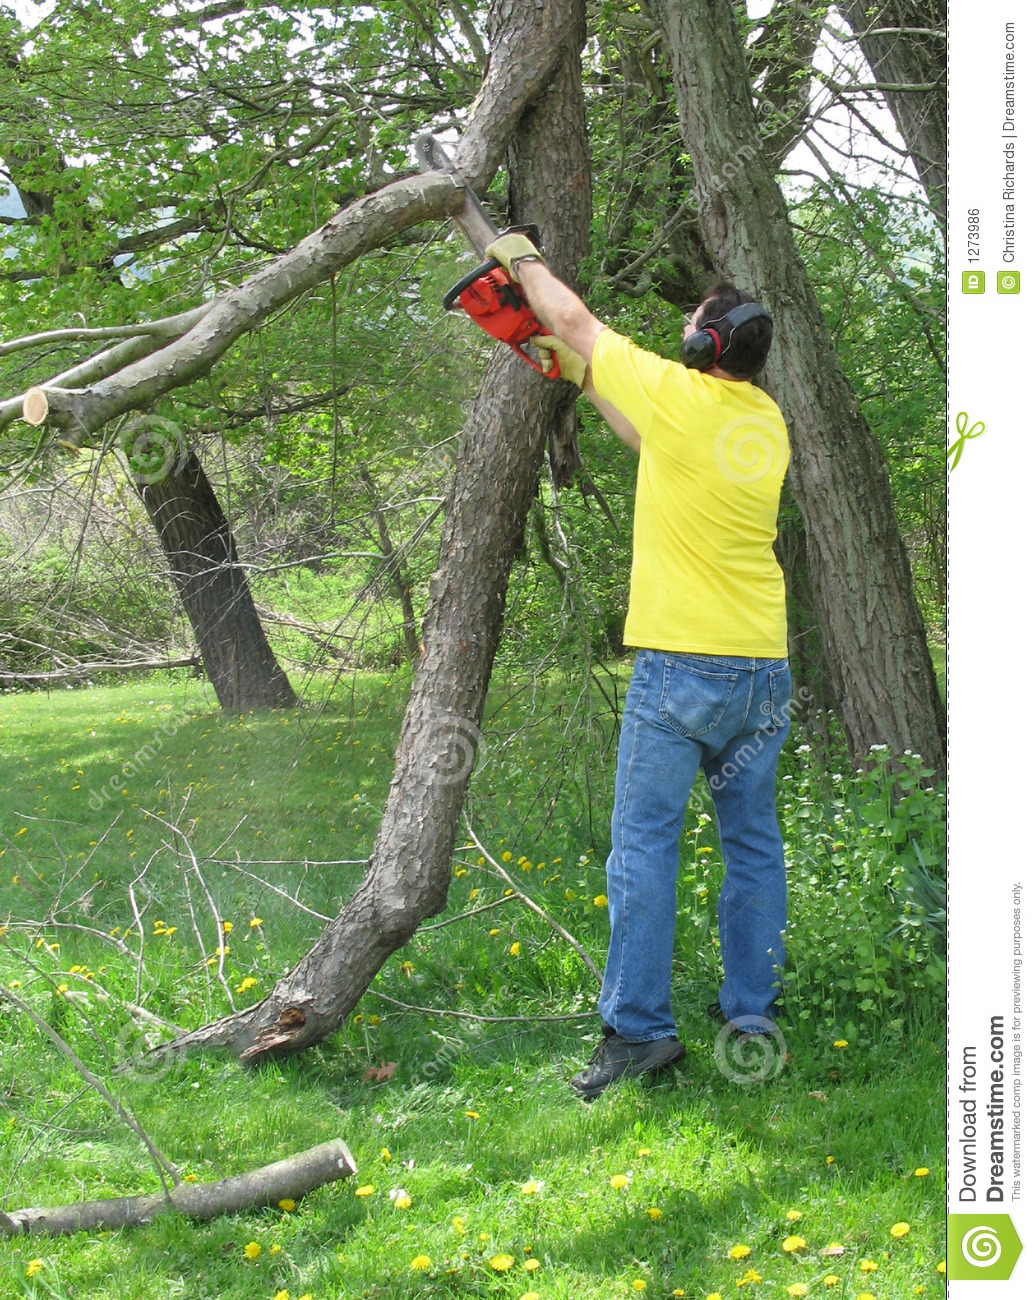 Man cutting a branch with a chainsaw